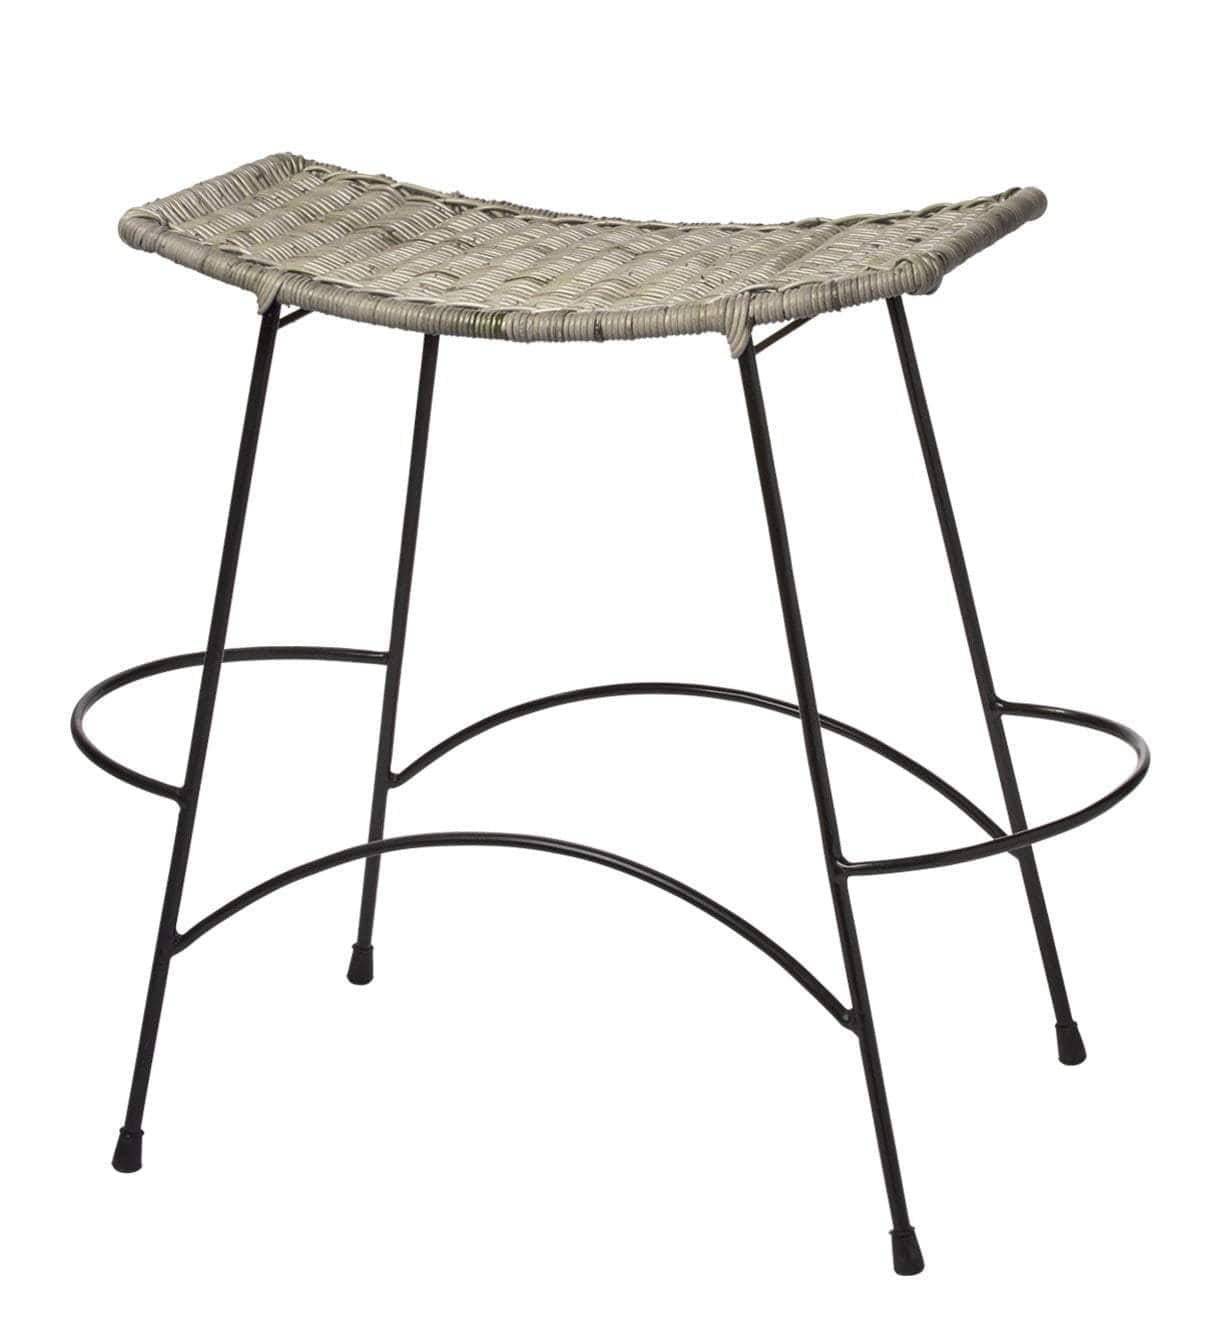 Jamie Young Jamie Young Wing Counter Stool in Natural Rattan and Black Steel 20WING-CSNA